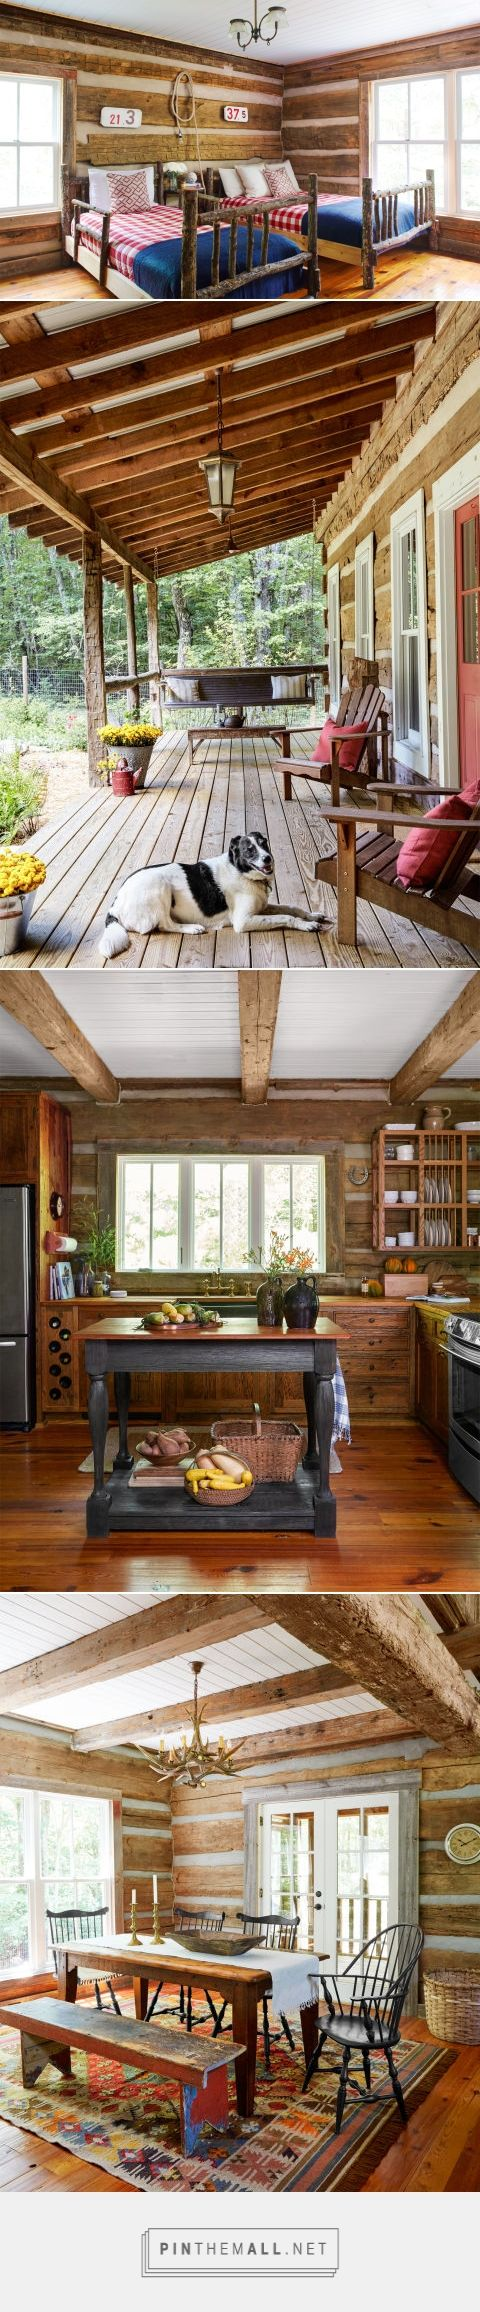 best 20 cabin interiors ideas on pinterest barn homes rustic this gorgeous georgia cabin puts log homes everywhere to shame